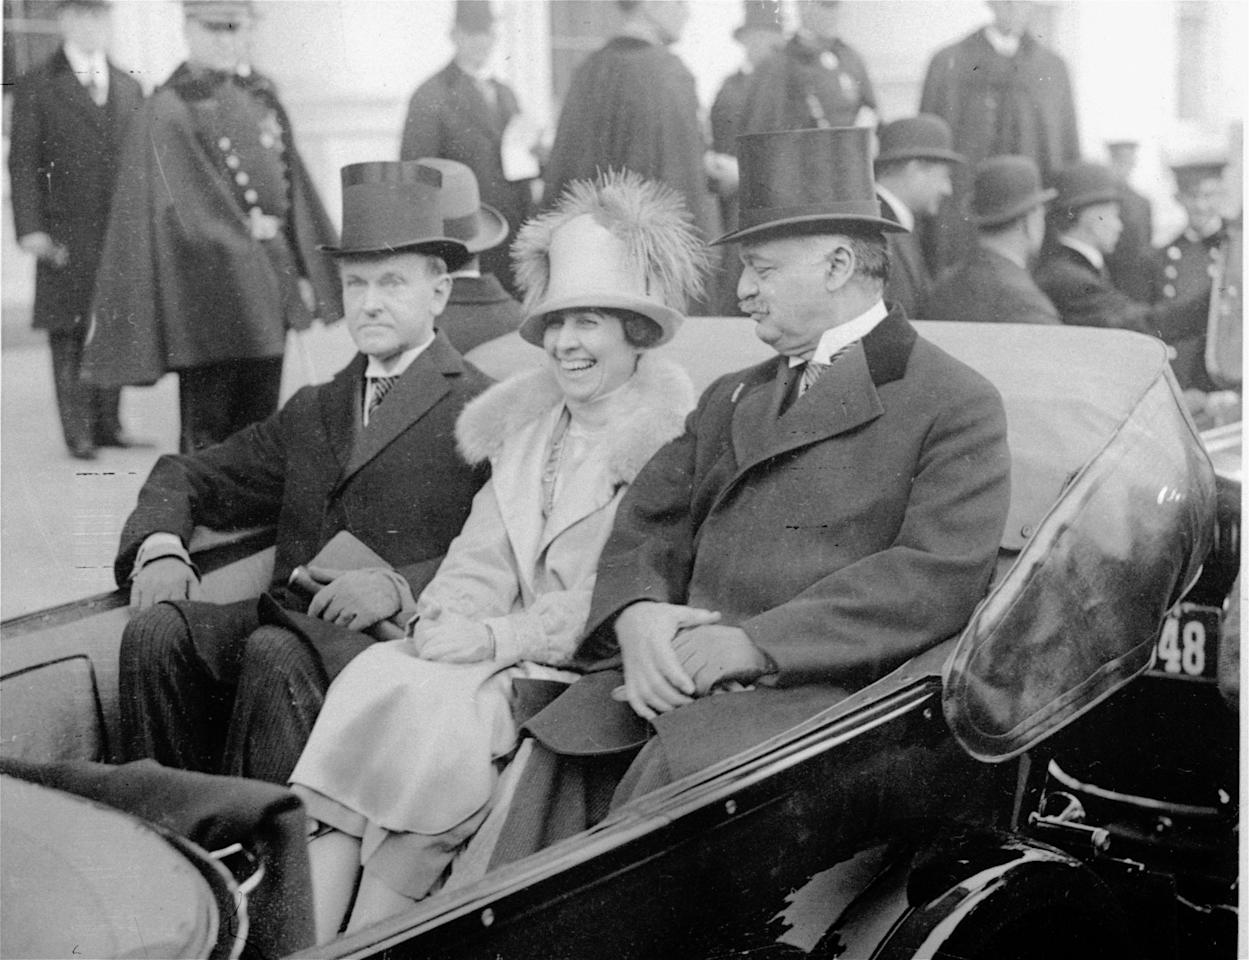 Calvin Coolidge, left, wears wing collar and muted top hat en route to take oath on inauguration day, March 4, 1925. (AP Photo)